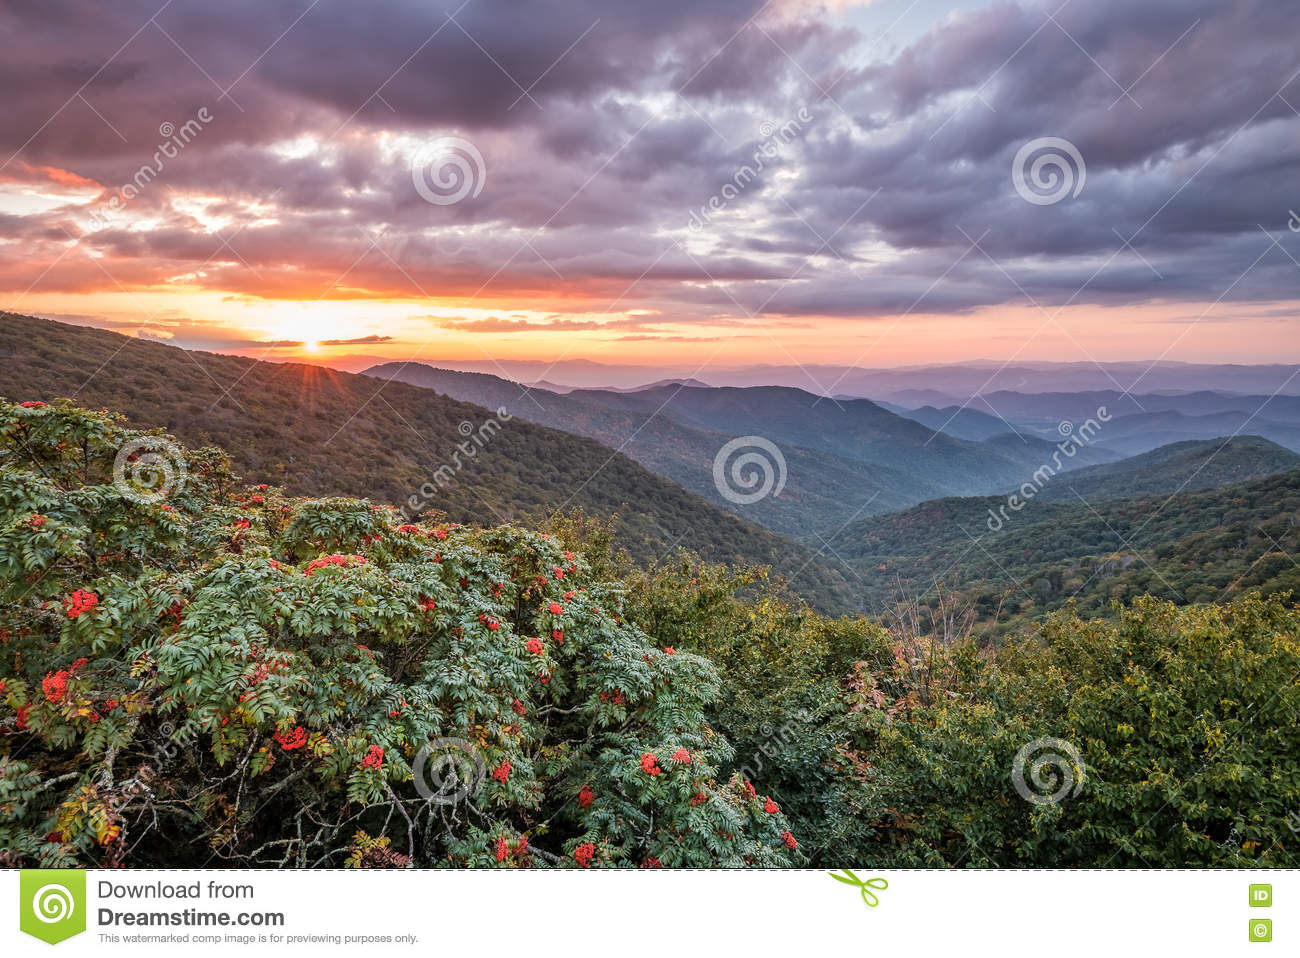 Sunset At Craggy Gardens Stock Photo Image Of Gardens 81859638